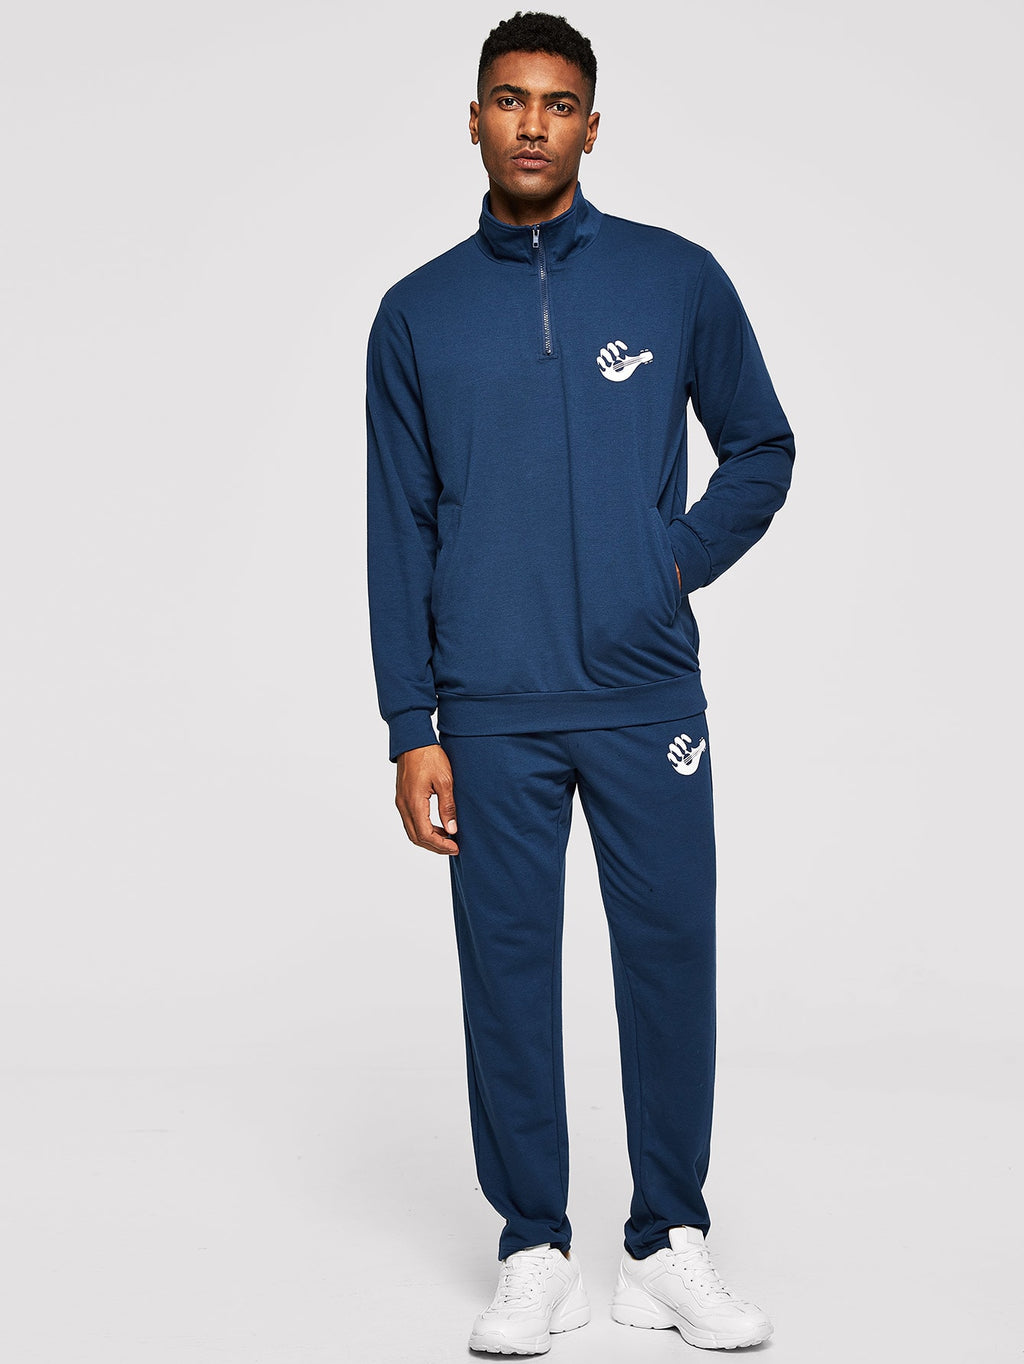 Men's Tracksuit - Zip Half Placket Pullover & Pants Set